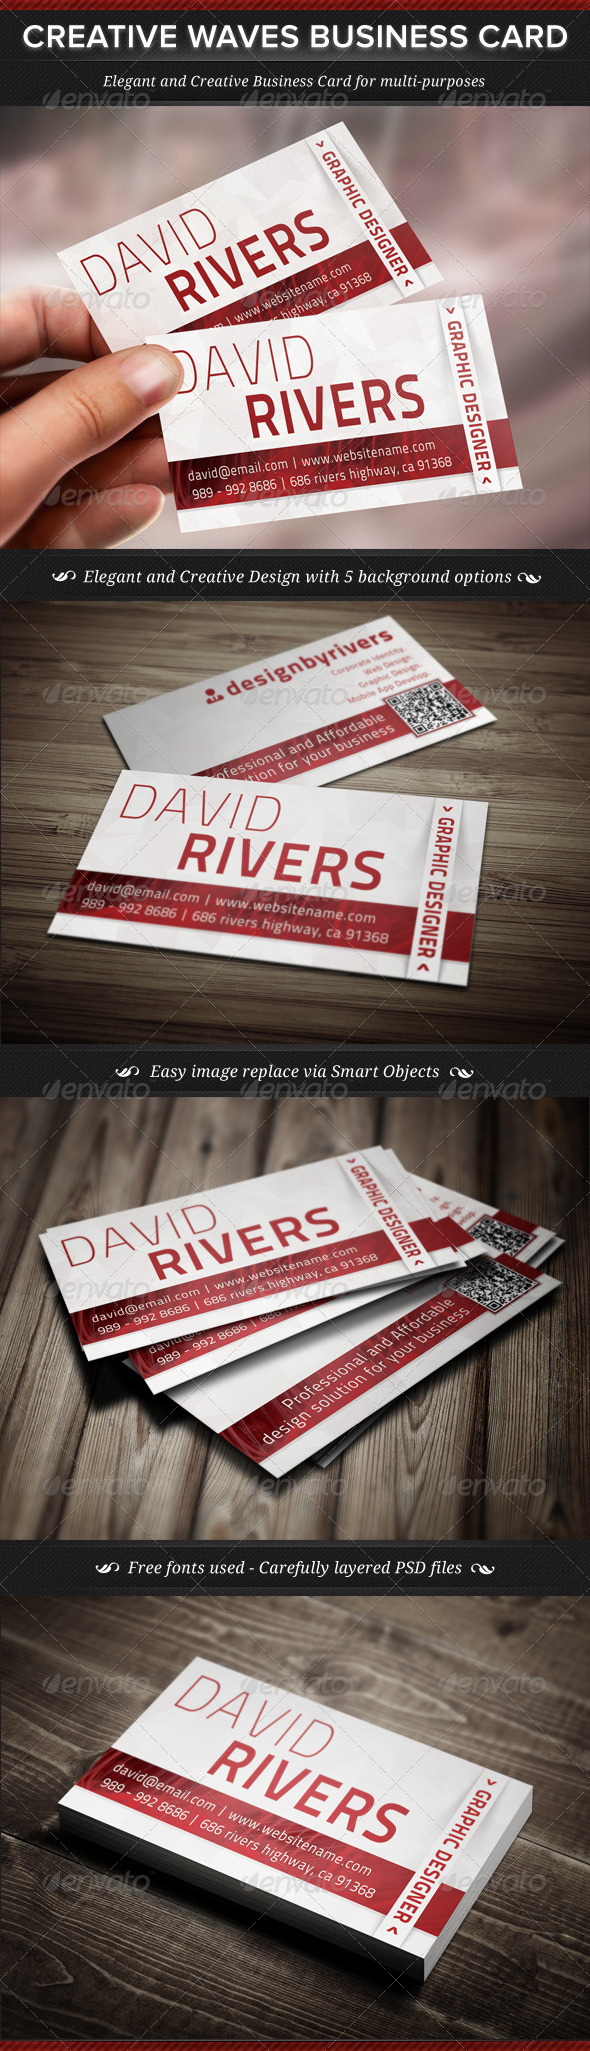 Creative Waves Corporate Business Card - Corporate Business Cards